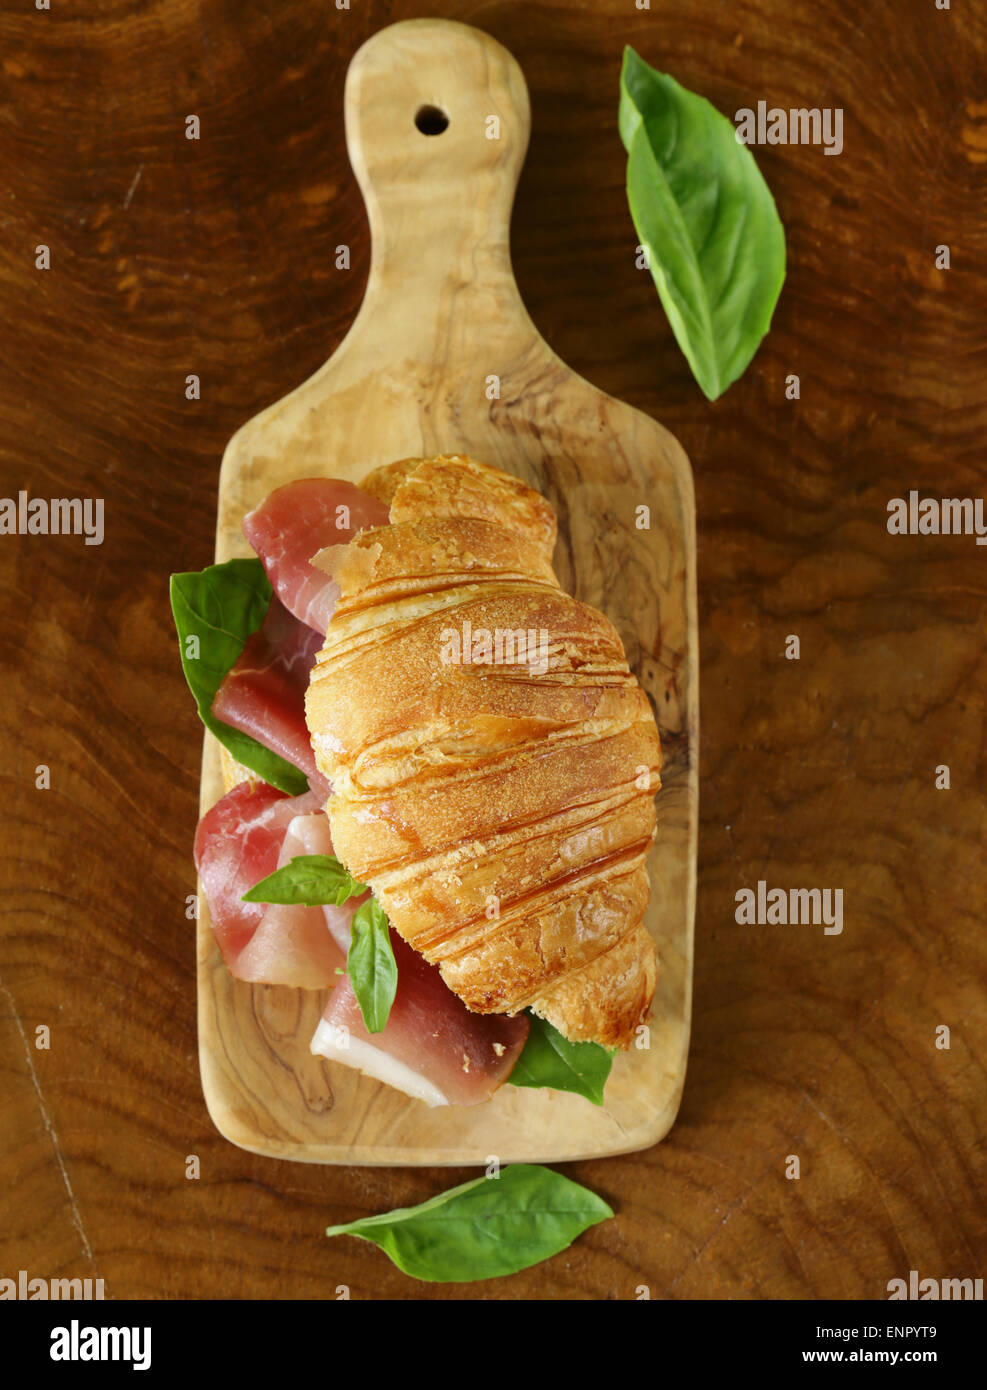 gourmet sandwich croissant with ham and basil - Stock Image